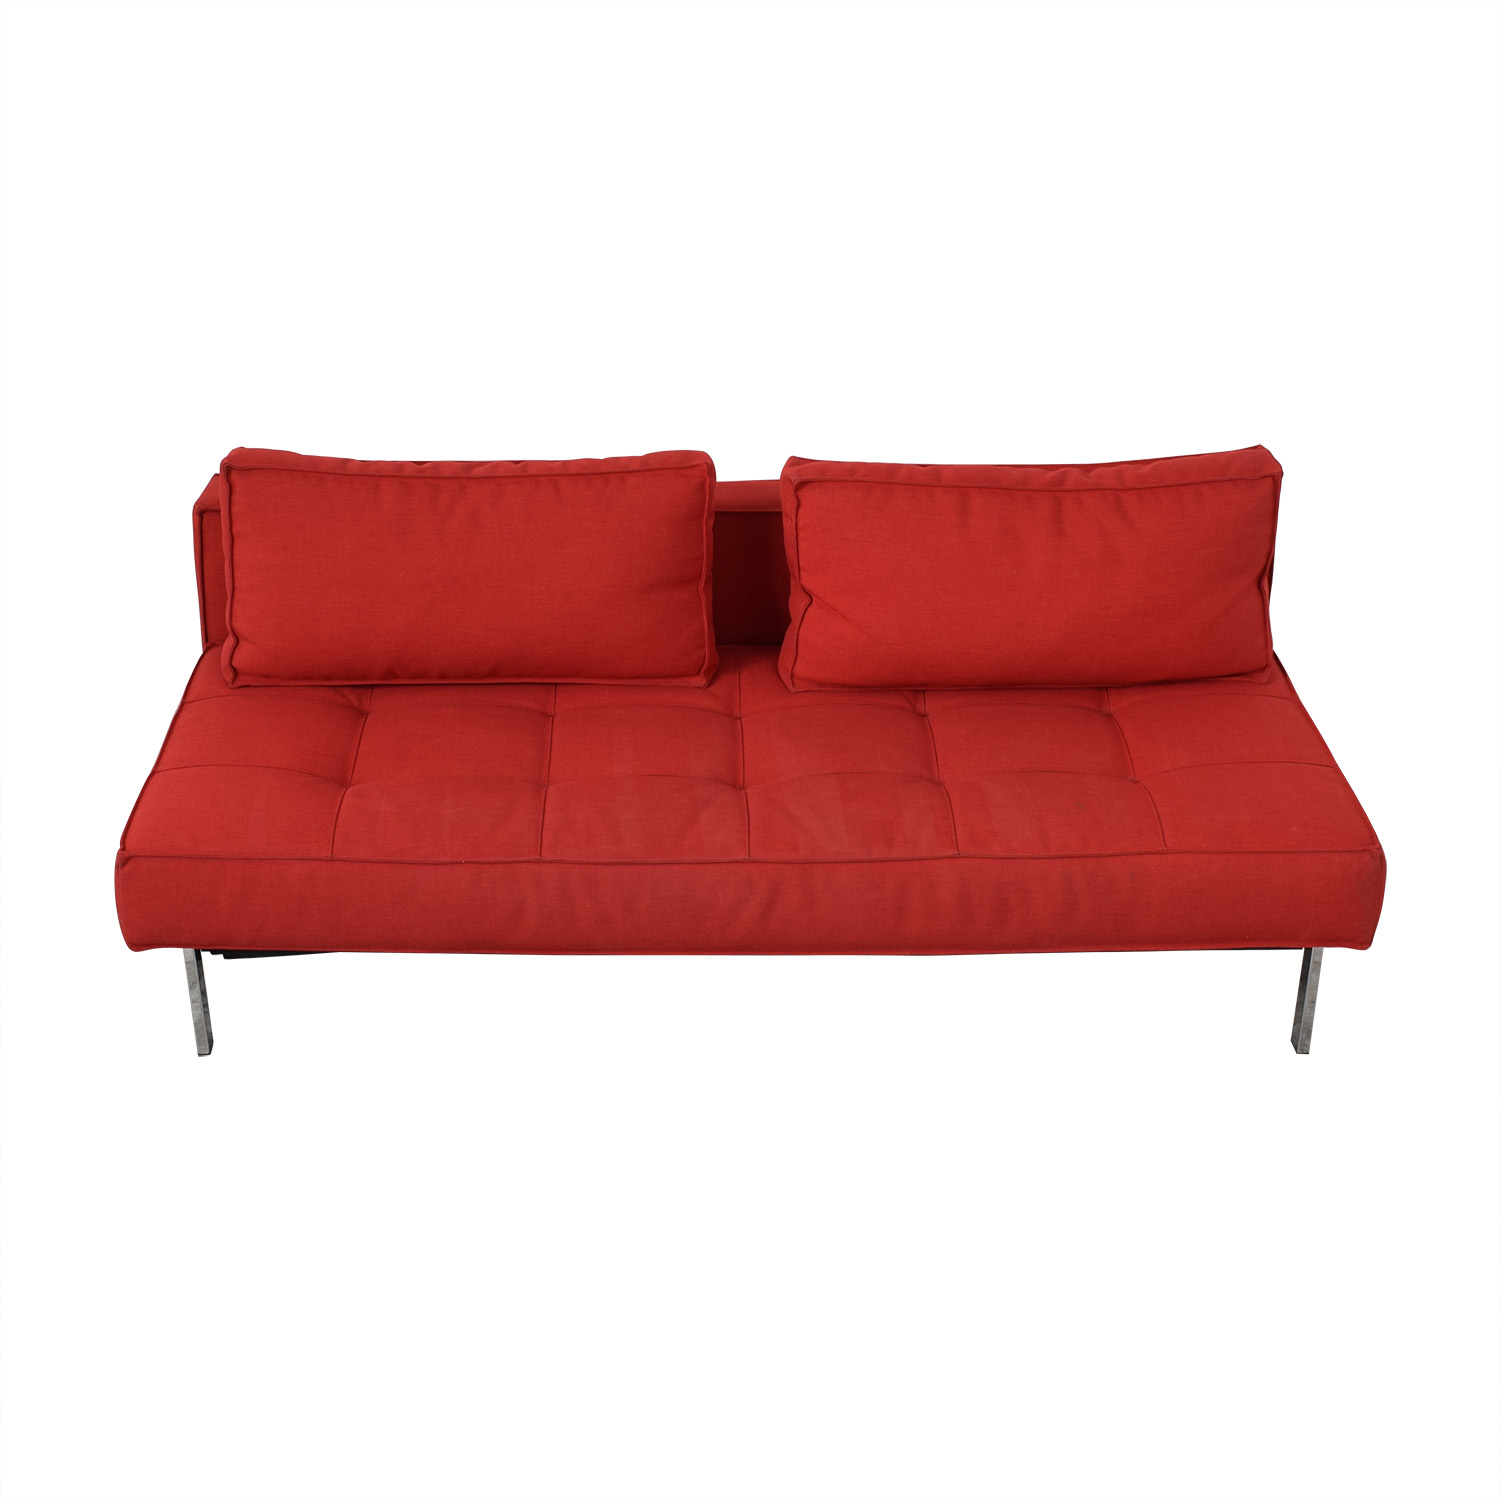 Innovation Living Innovation Living Red Tufted Twin Sleeper Sofa on sale